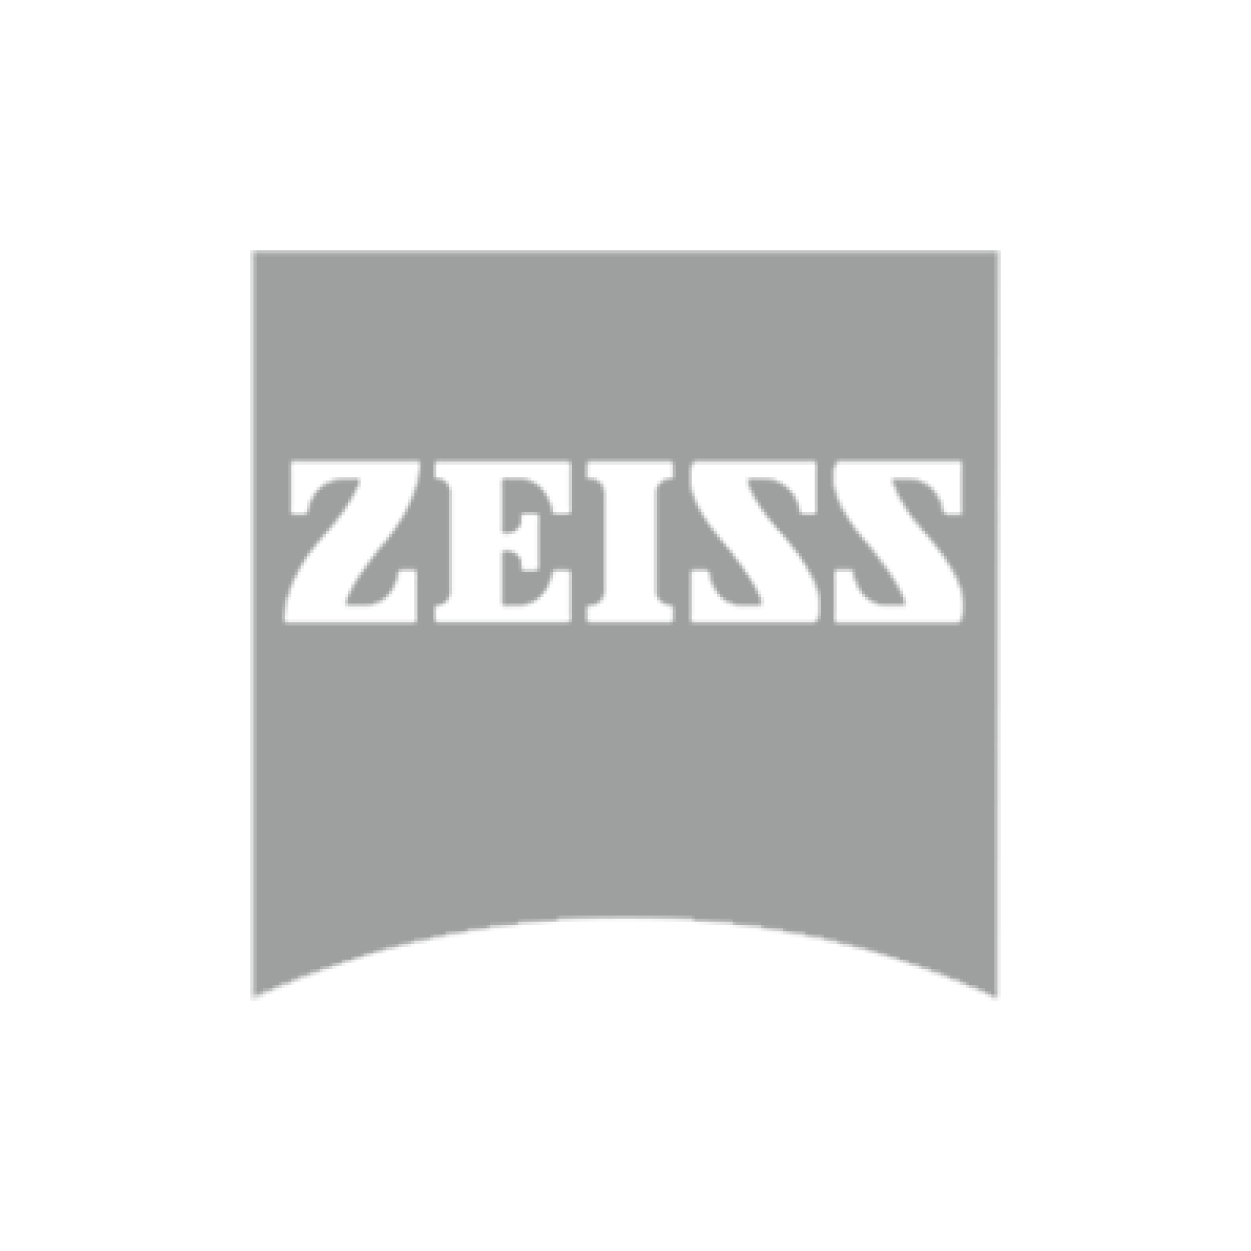 zeiss-1.png